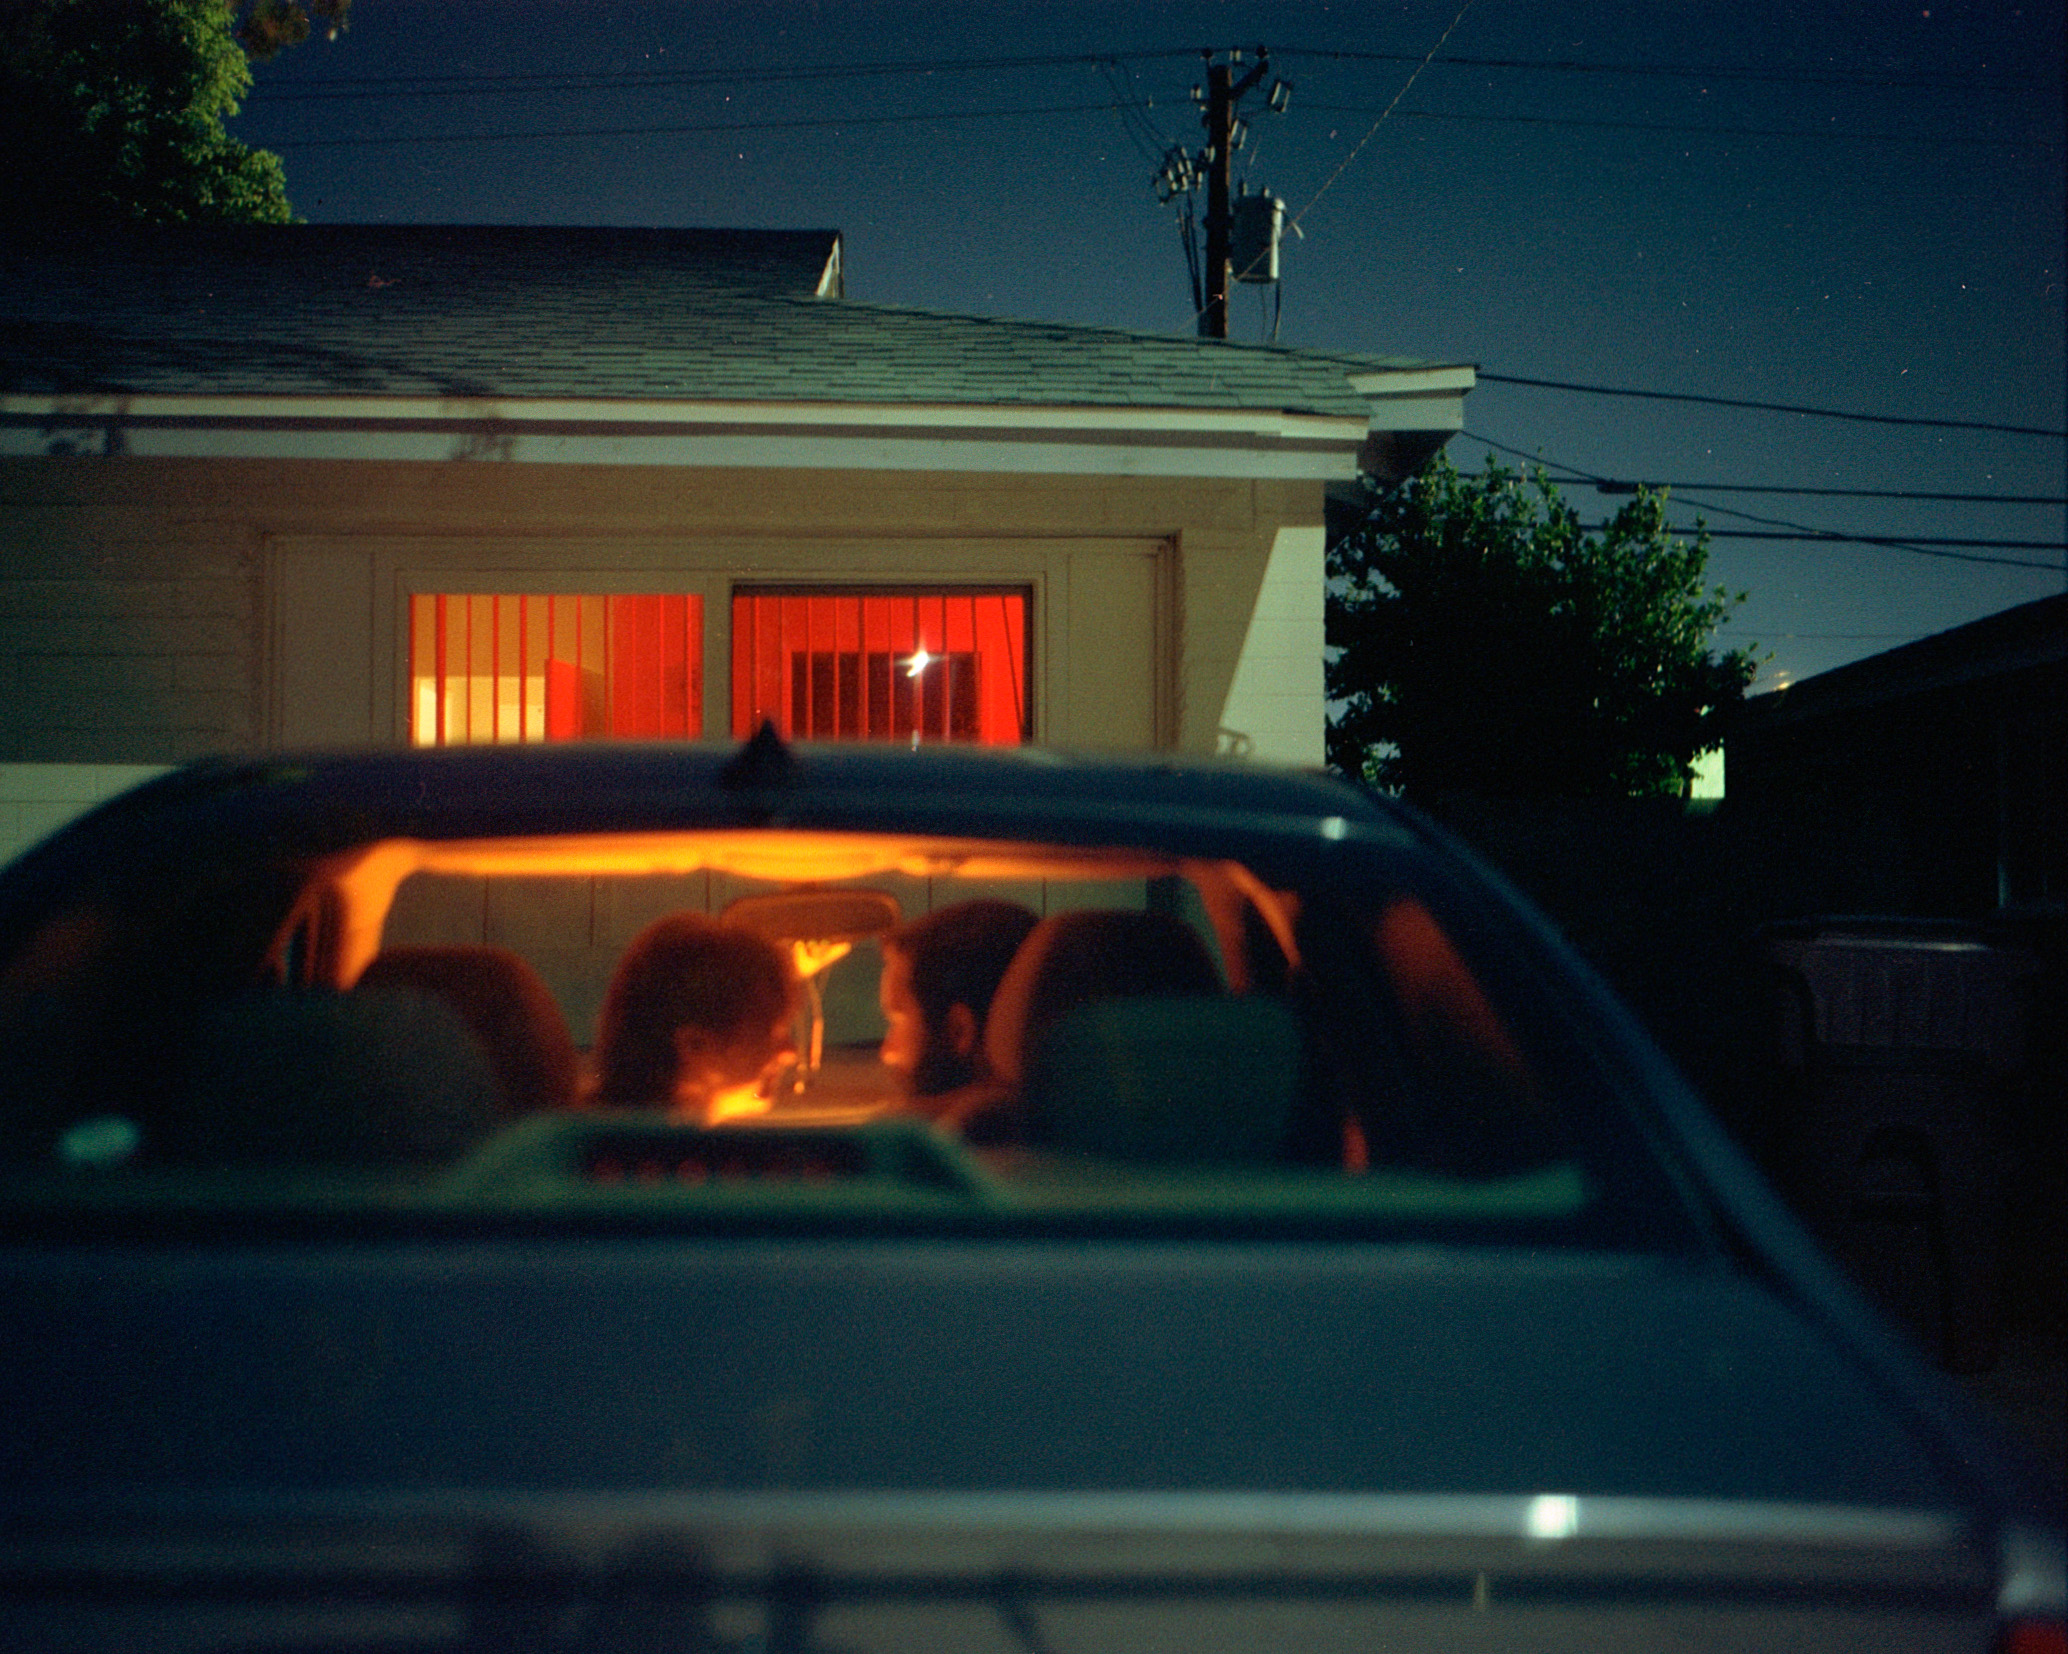 A couple sit in the front seats of a car parked in front of a house staring into each others eyes.